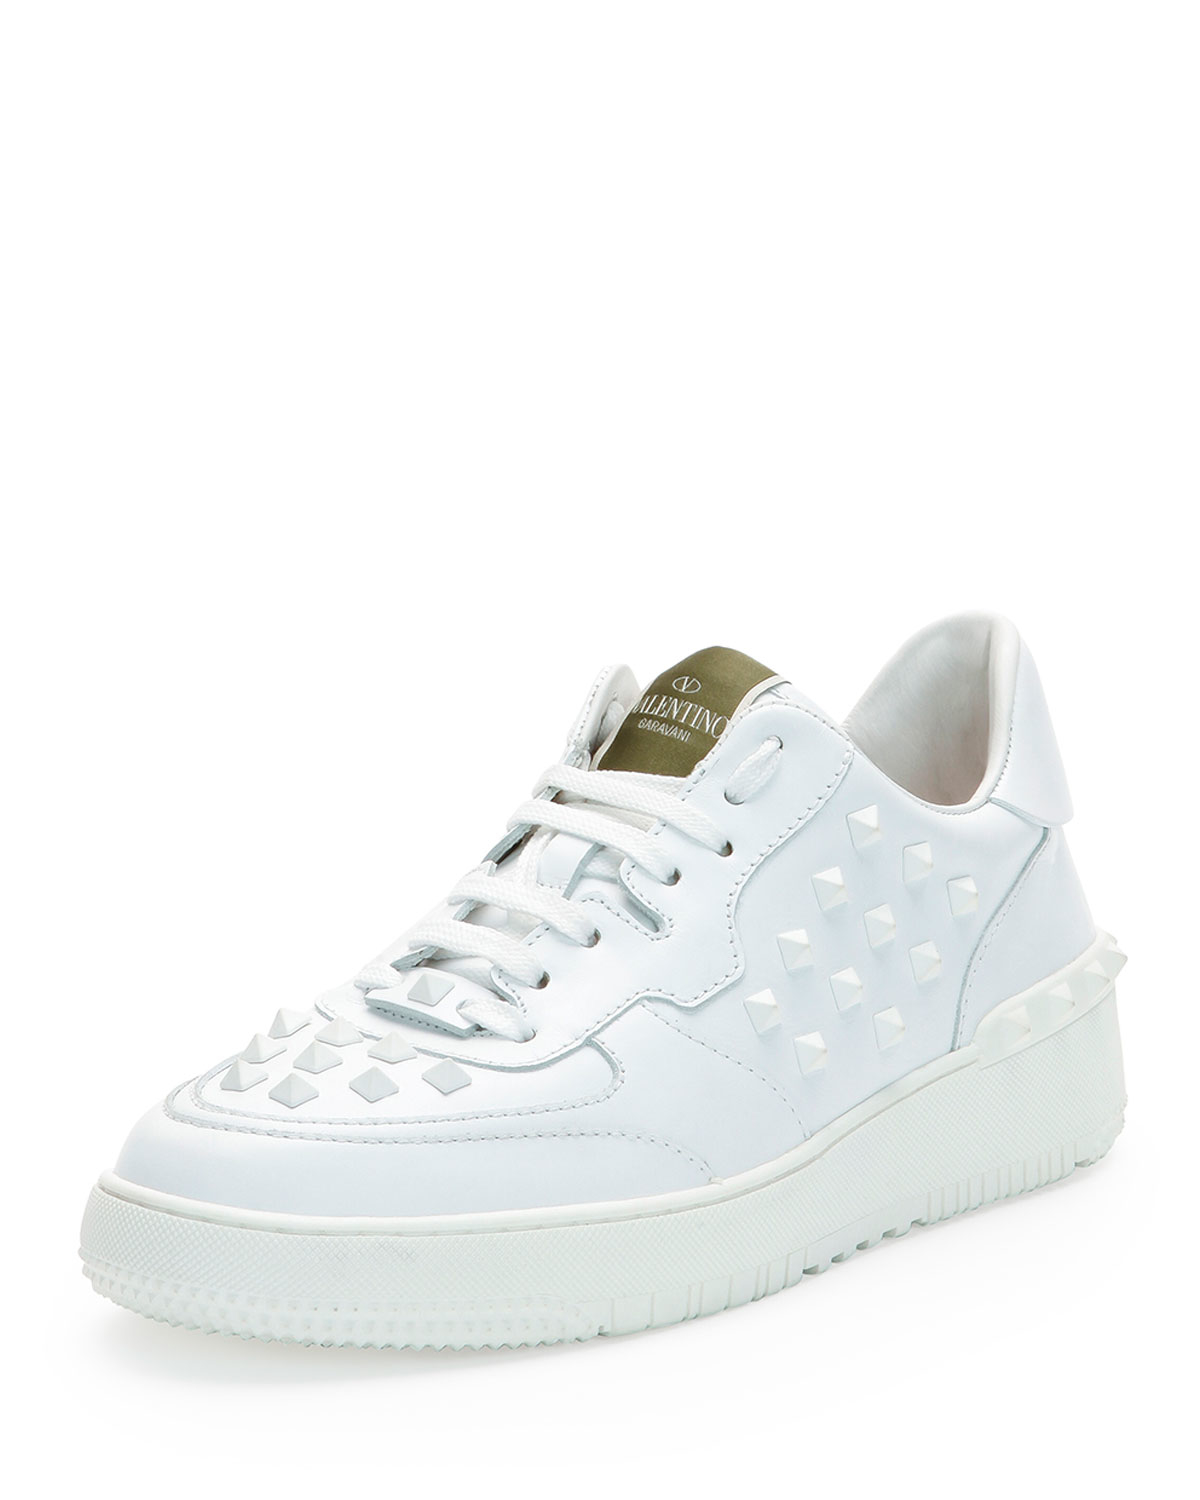 Must-have shoes for women at ZARA online. Find the perfect pair for you and receive it with FREE SHIPPING. STUDDED LEATHER HIGH-HEEL ANKLE BOOTS. PRINTED LOAFERS. LEATHER LOAFERS. LEATHER LOAFERS. THICK SOLED SNEAKERS. WHITE SNEAKERS. FASHION SNEAKERS. FASHION SNEAKERS. TRICOLOR PLATFORM SNEAKERS. COLORS. .